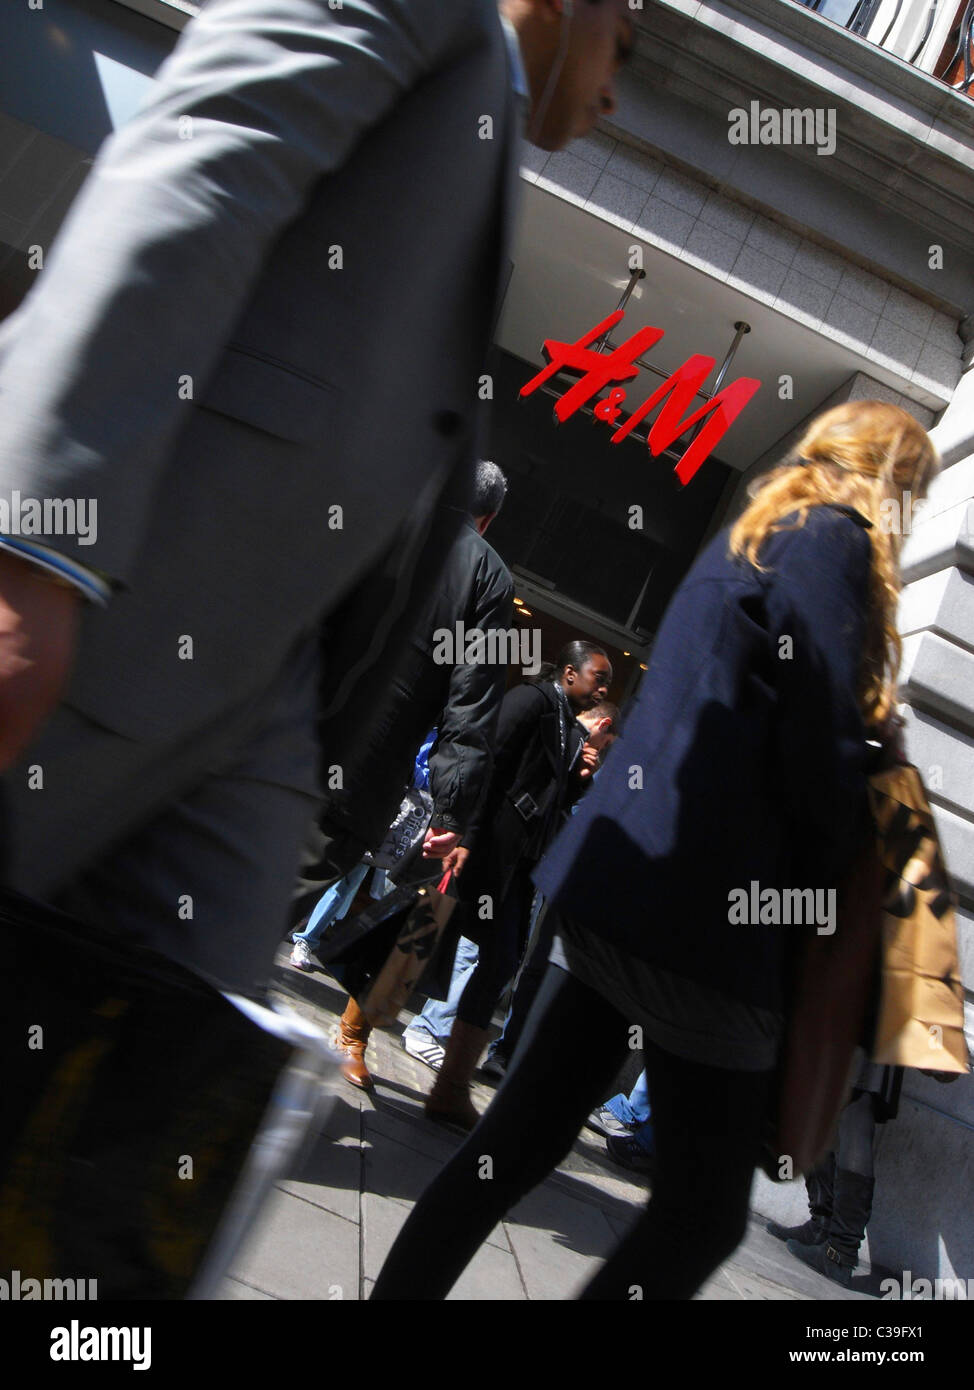 Exterior of a H&M store in London. - Stock Image